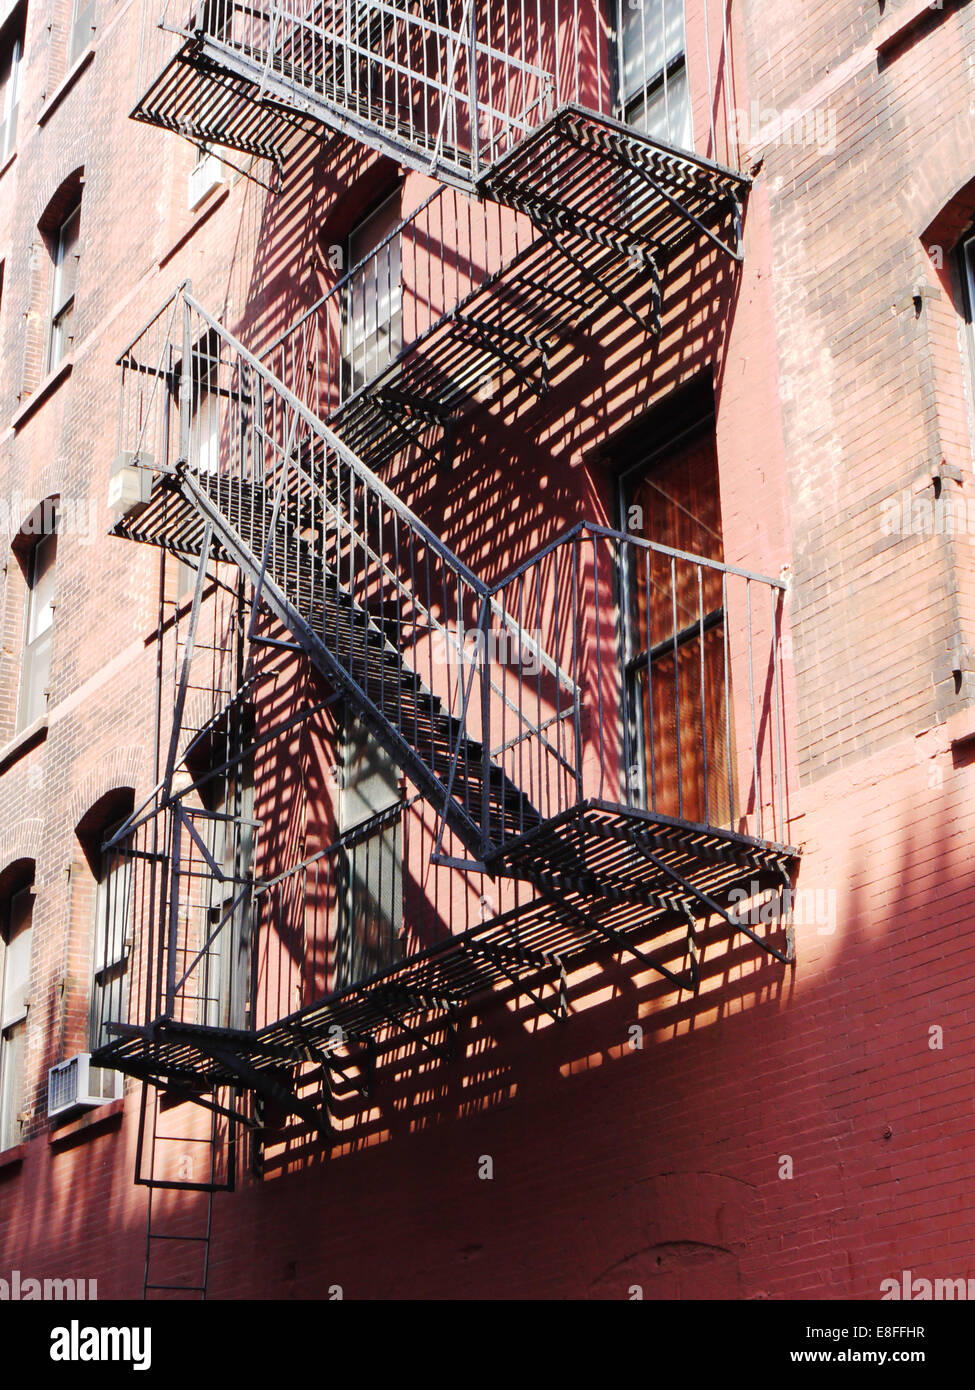 USA, New York State, New York City, Fire escape - Stock Image